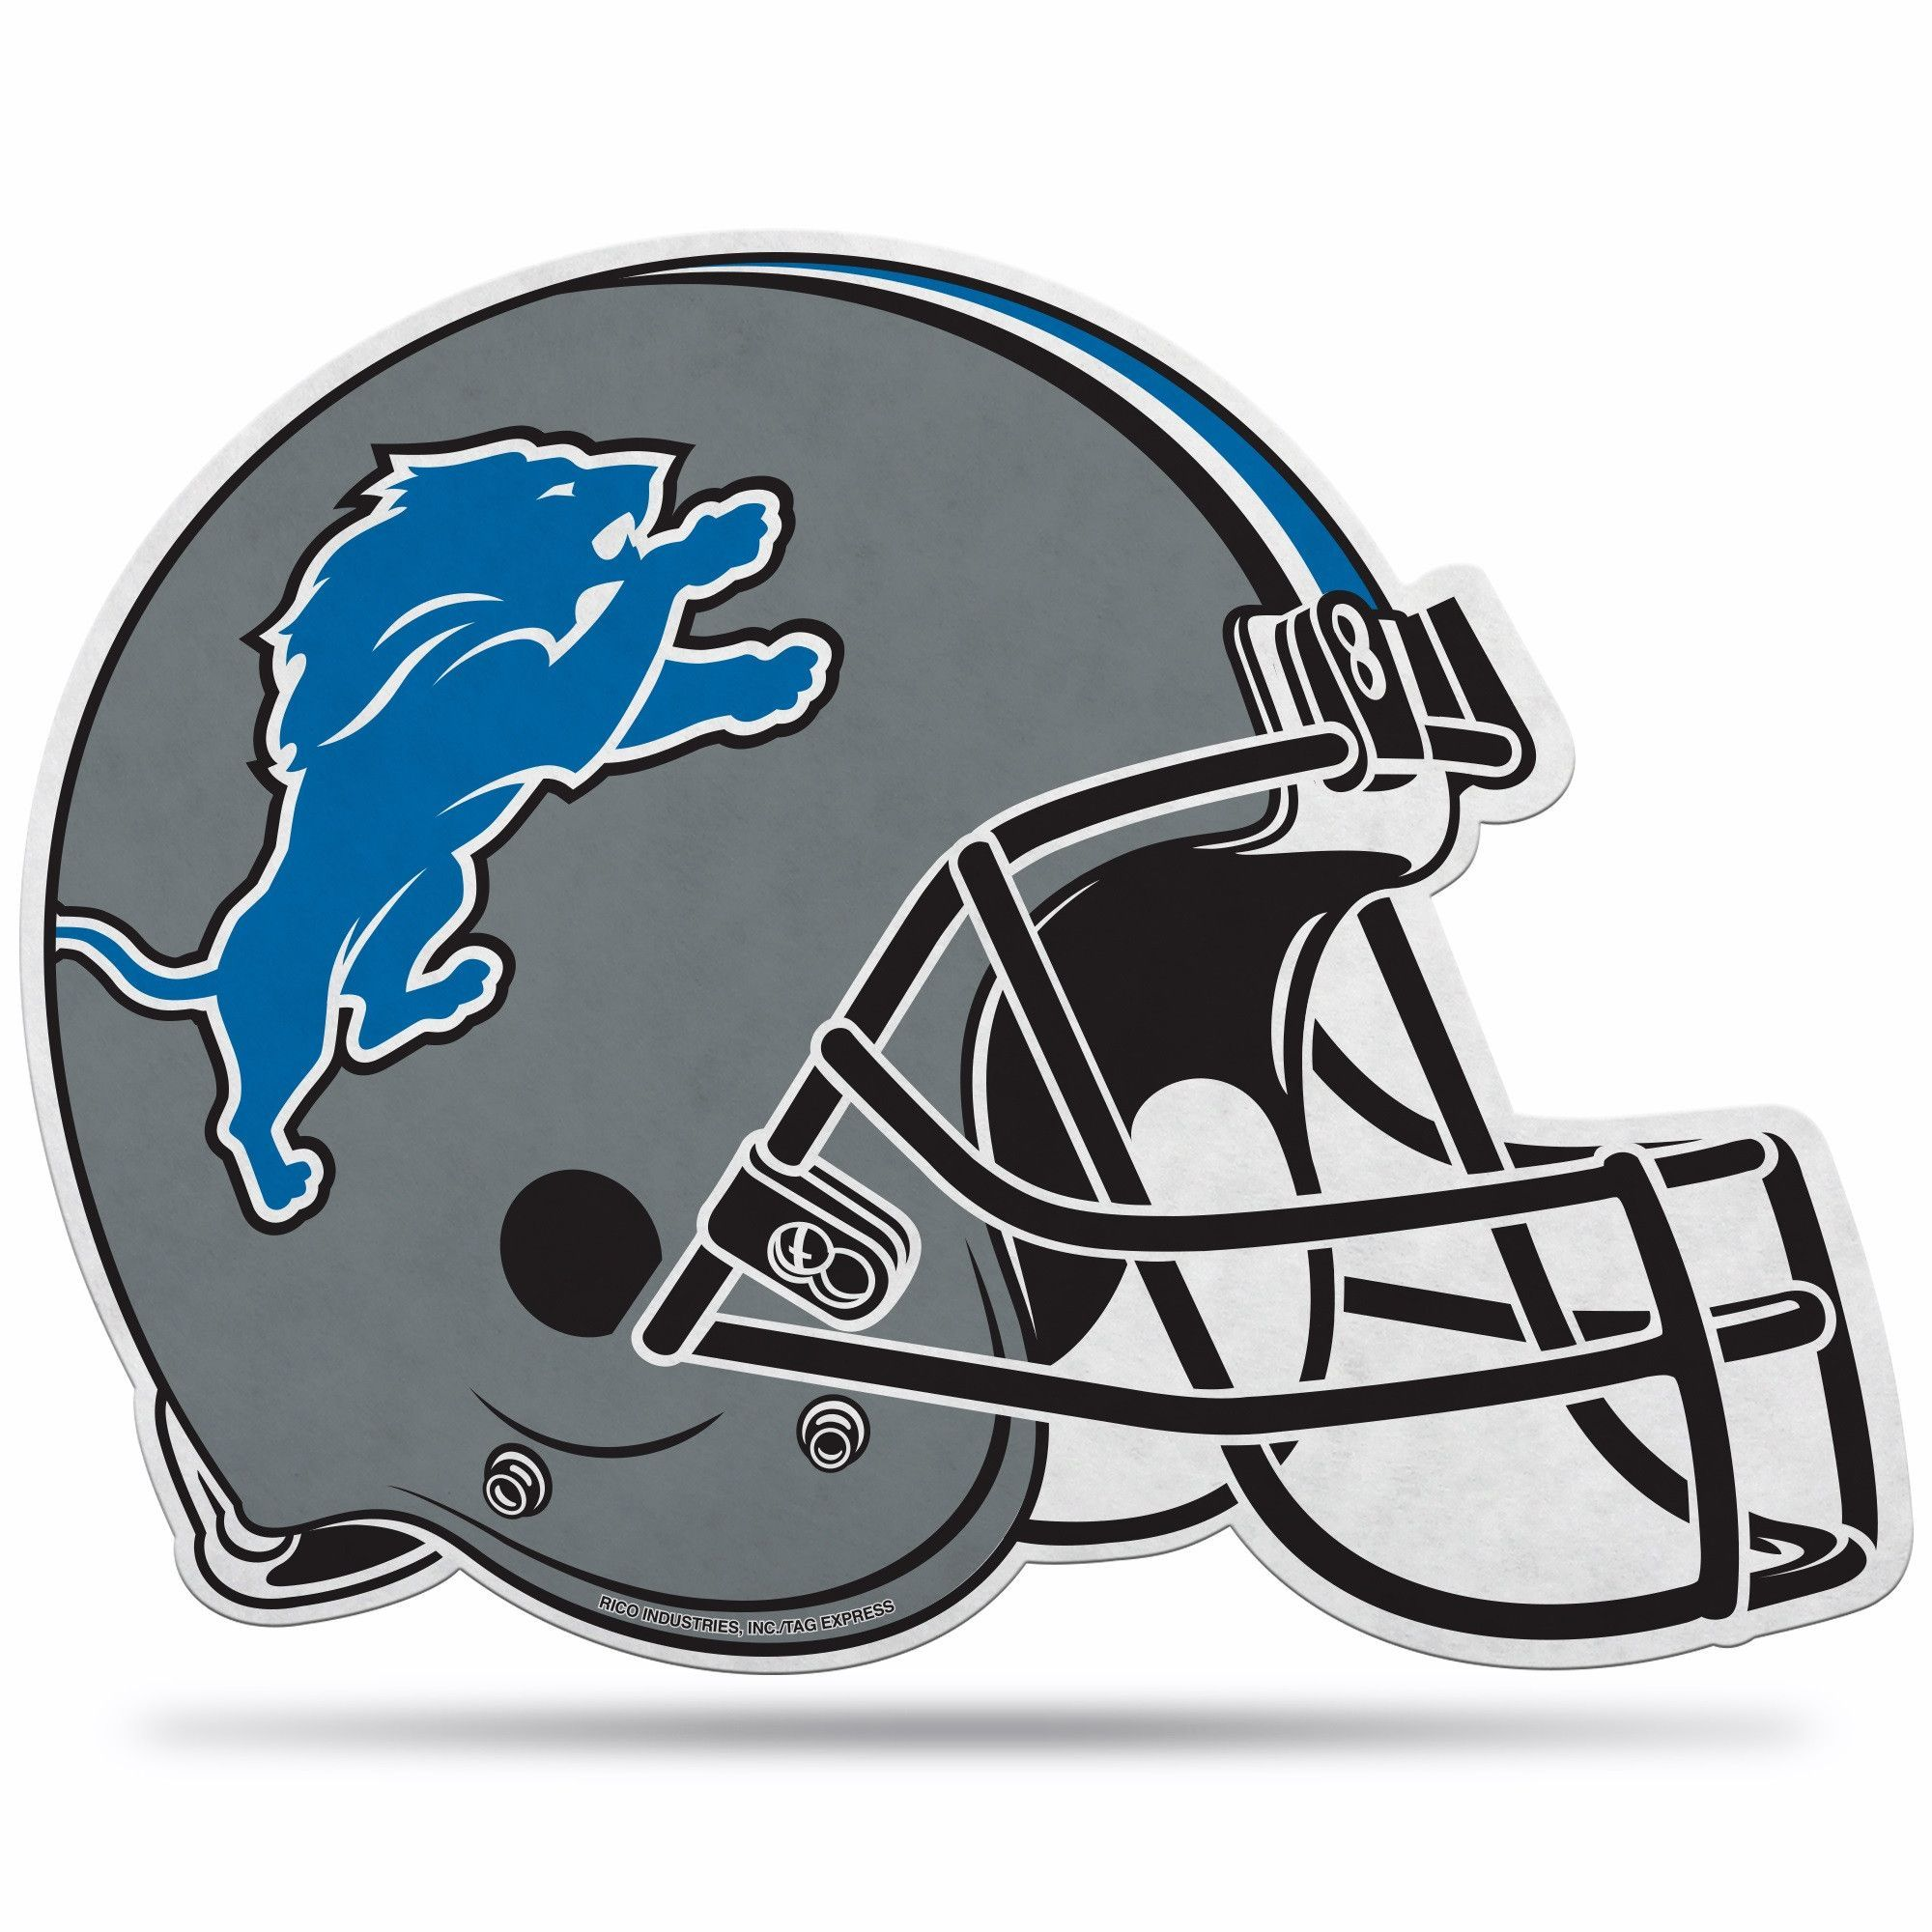 Pennant with football helmet clipart clipart black and white stock Detroit Lions Helmet Die-Cut Pennant | Products | Football ... clipart black and white stock